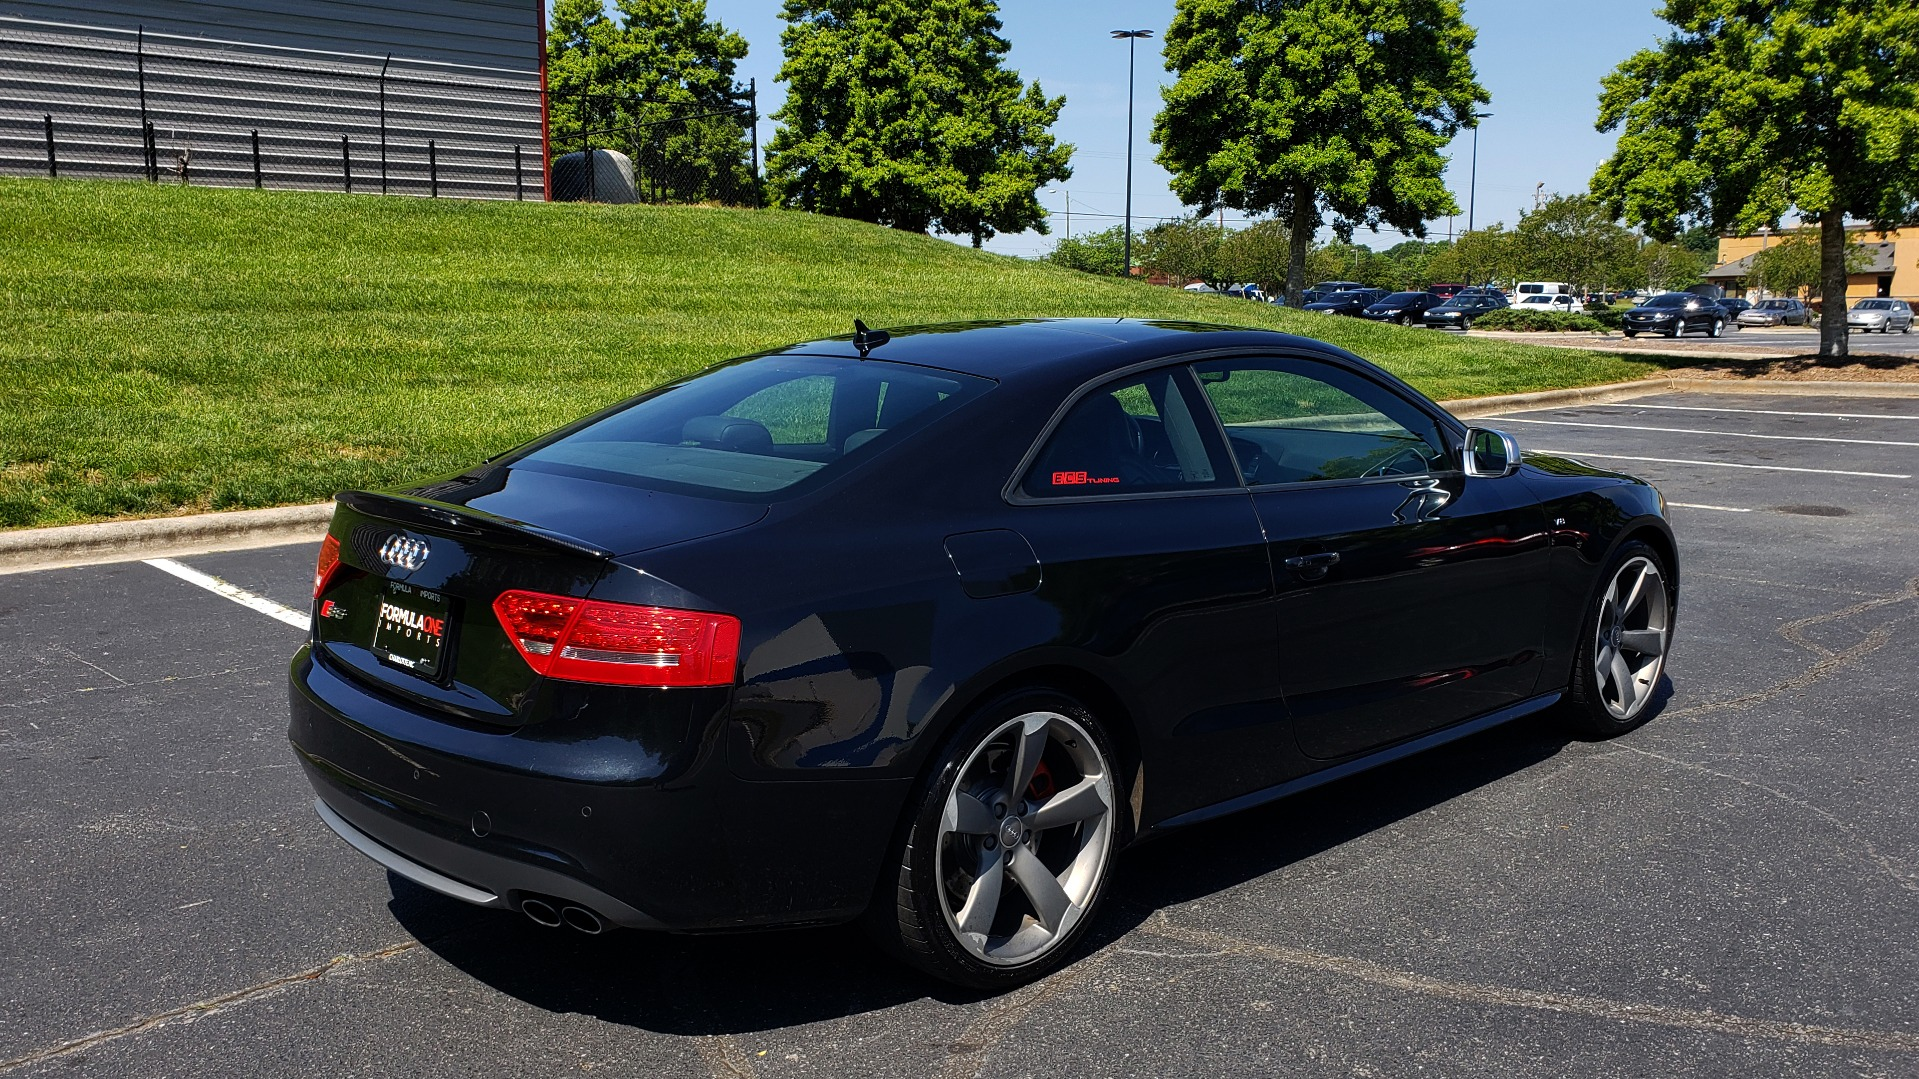 Used 2011 Audi S5 PREMIUM PLUS / AVENGERS COUPE / NAV / SUNROOF / REARVIEW for sale Sold at Formula Imports in Charlotte NC 28227 6